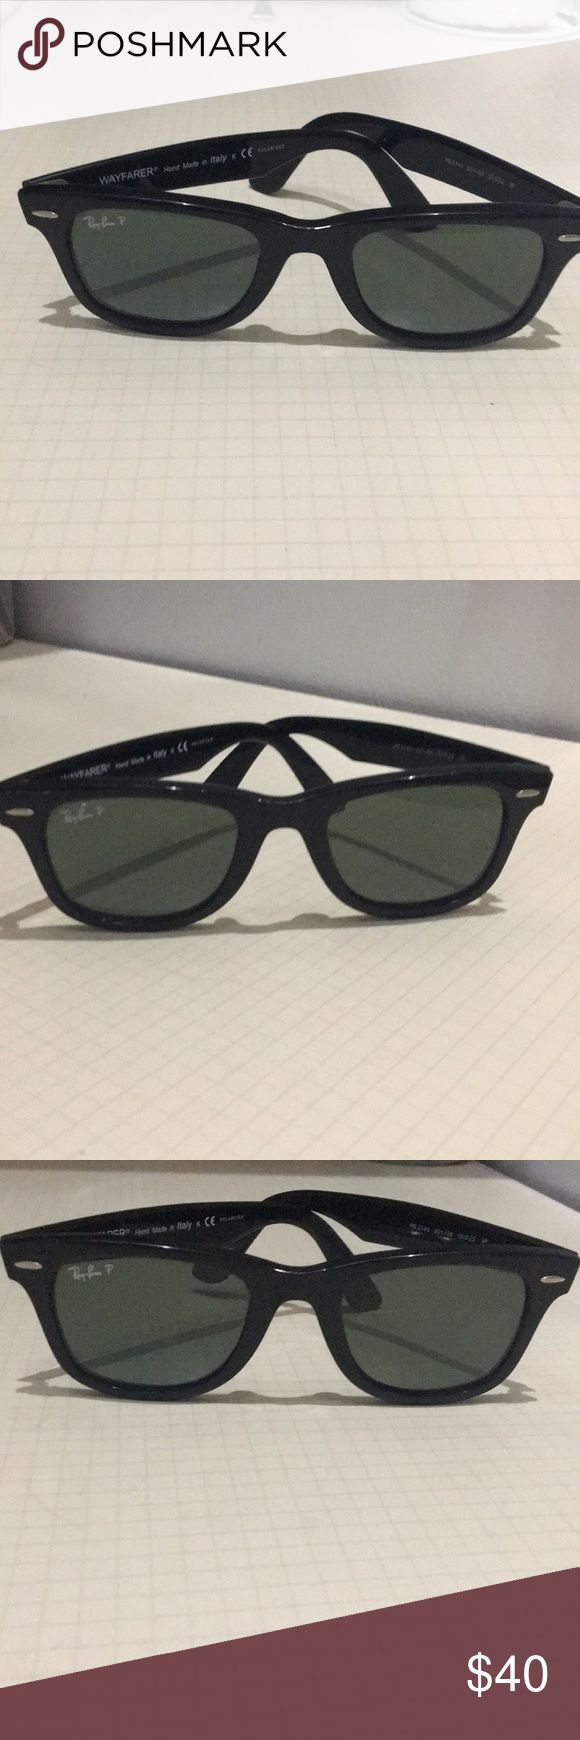 Ray-Ban Wayfarer Black Polarized Dark Lenses 50 mm Ray-Ban Wayfarer Black Polarized Lenses Black/ Green Dark Tinted Authentic A Few Minor Scratches On Bottom Of Arm That Tucks Behind Your Ear- Sunglasses Only- They Are Loose On Me- Excellent Sunglasses 50 mm Lenses Ray-Ban Accessories Sunglasses